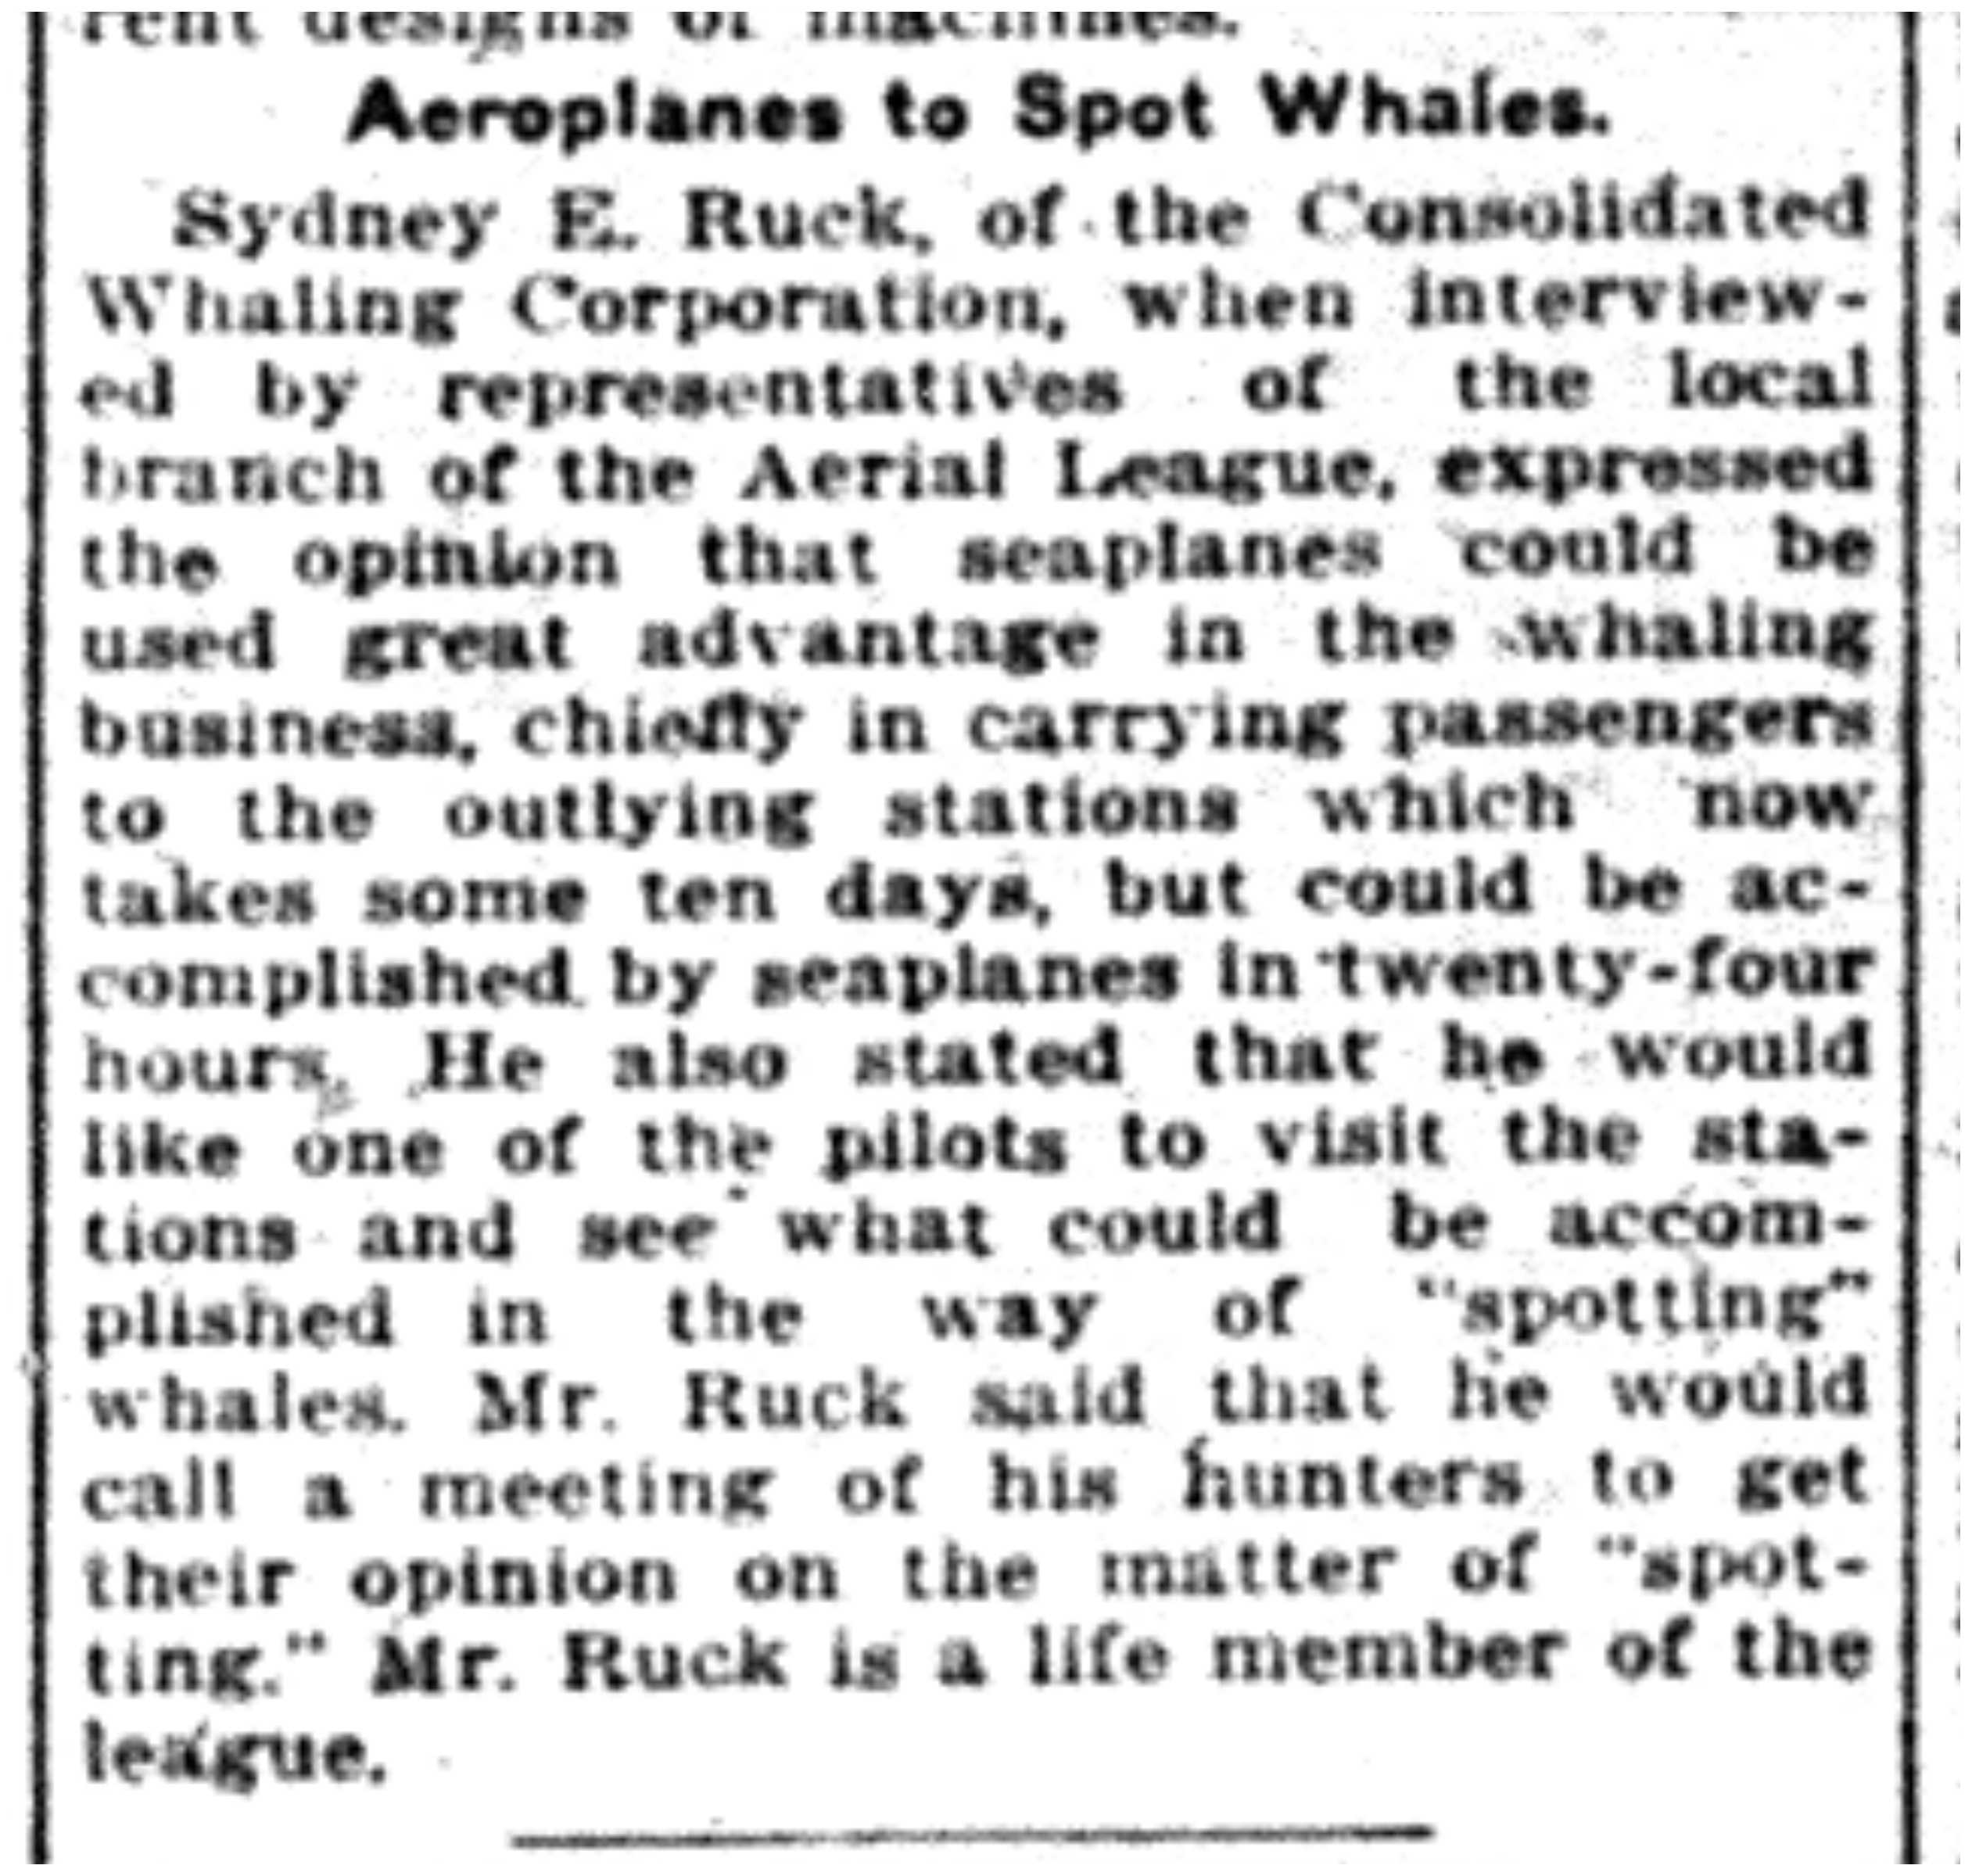 """Aeroplanes to Spot Whales"""